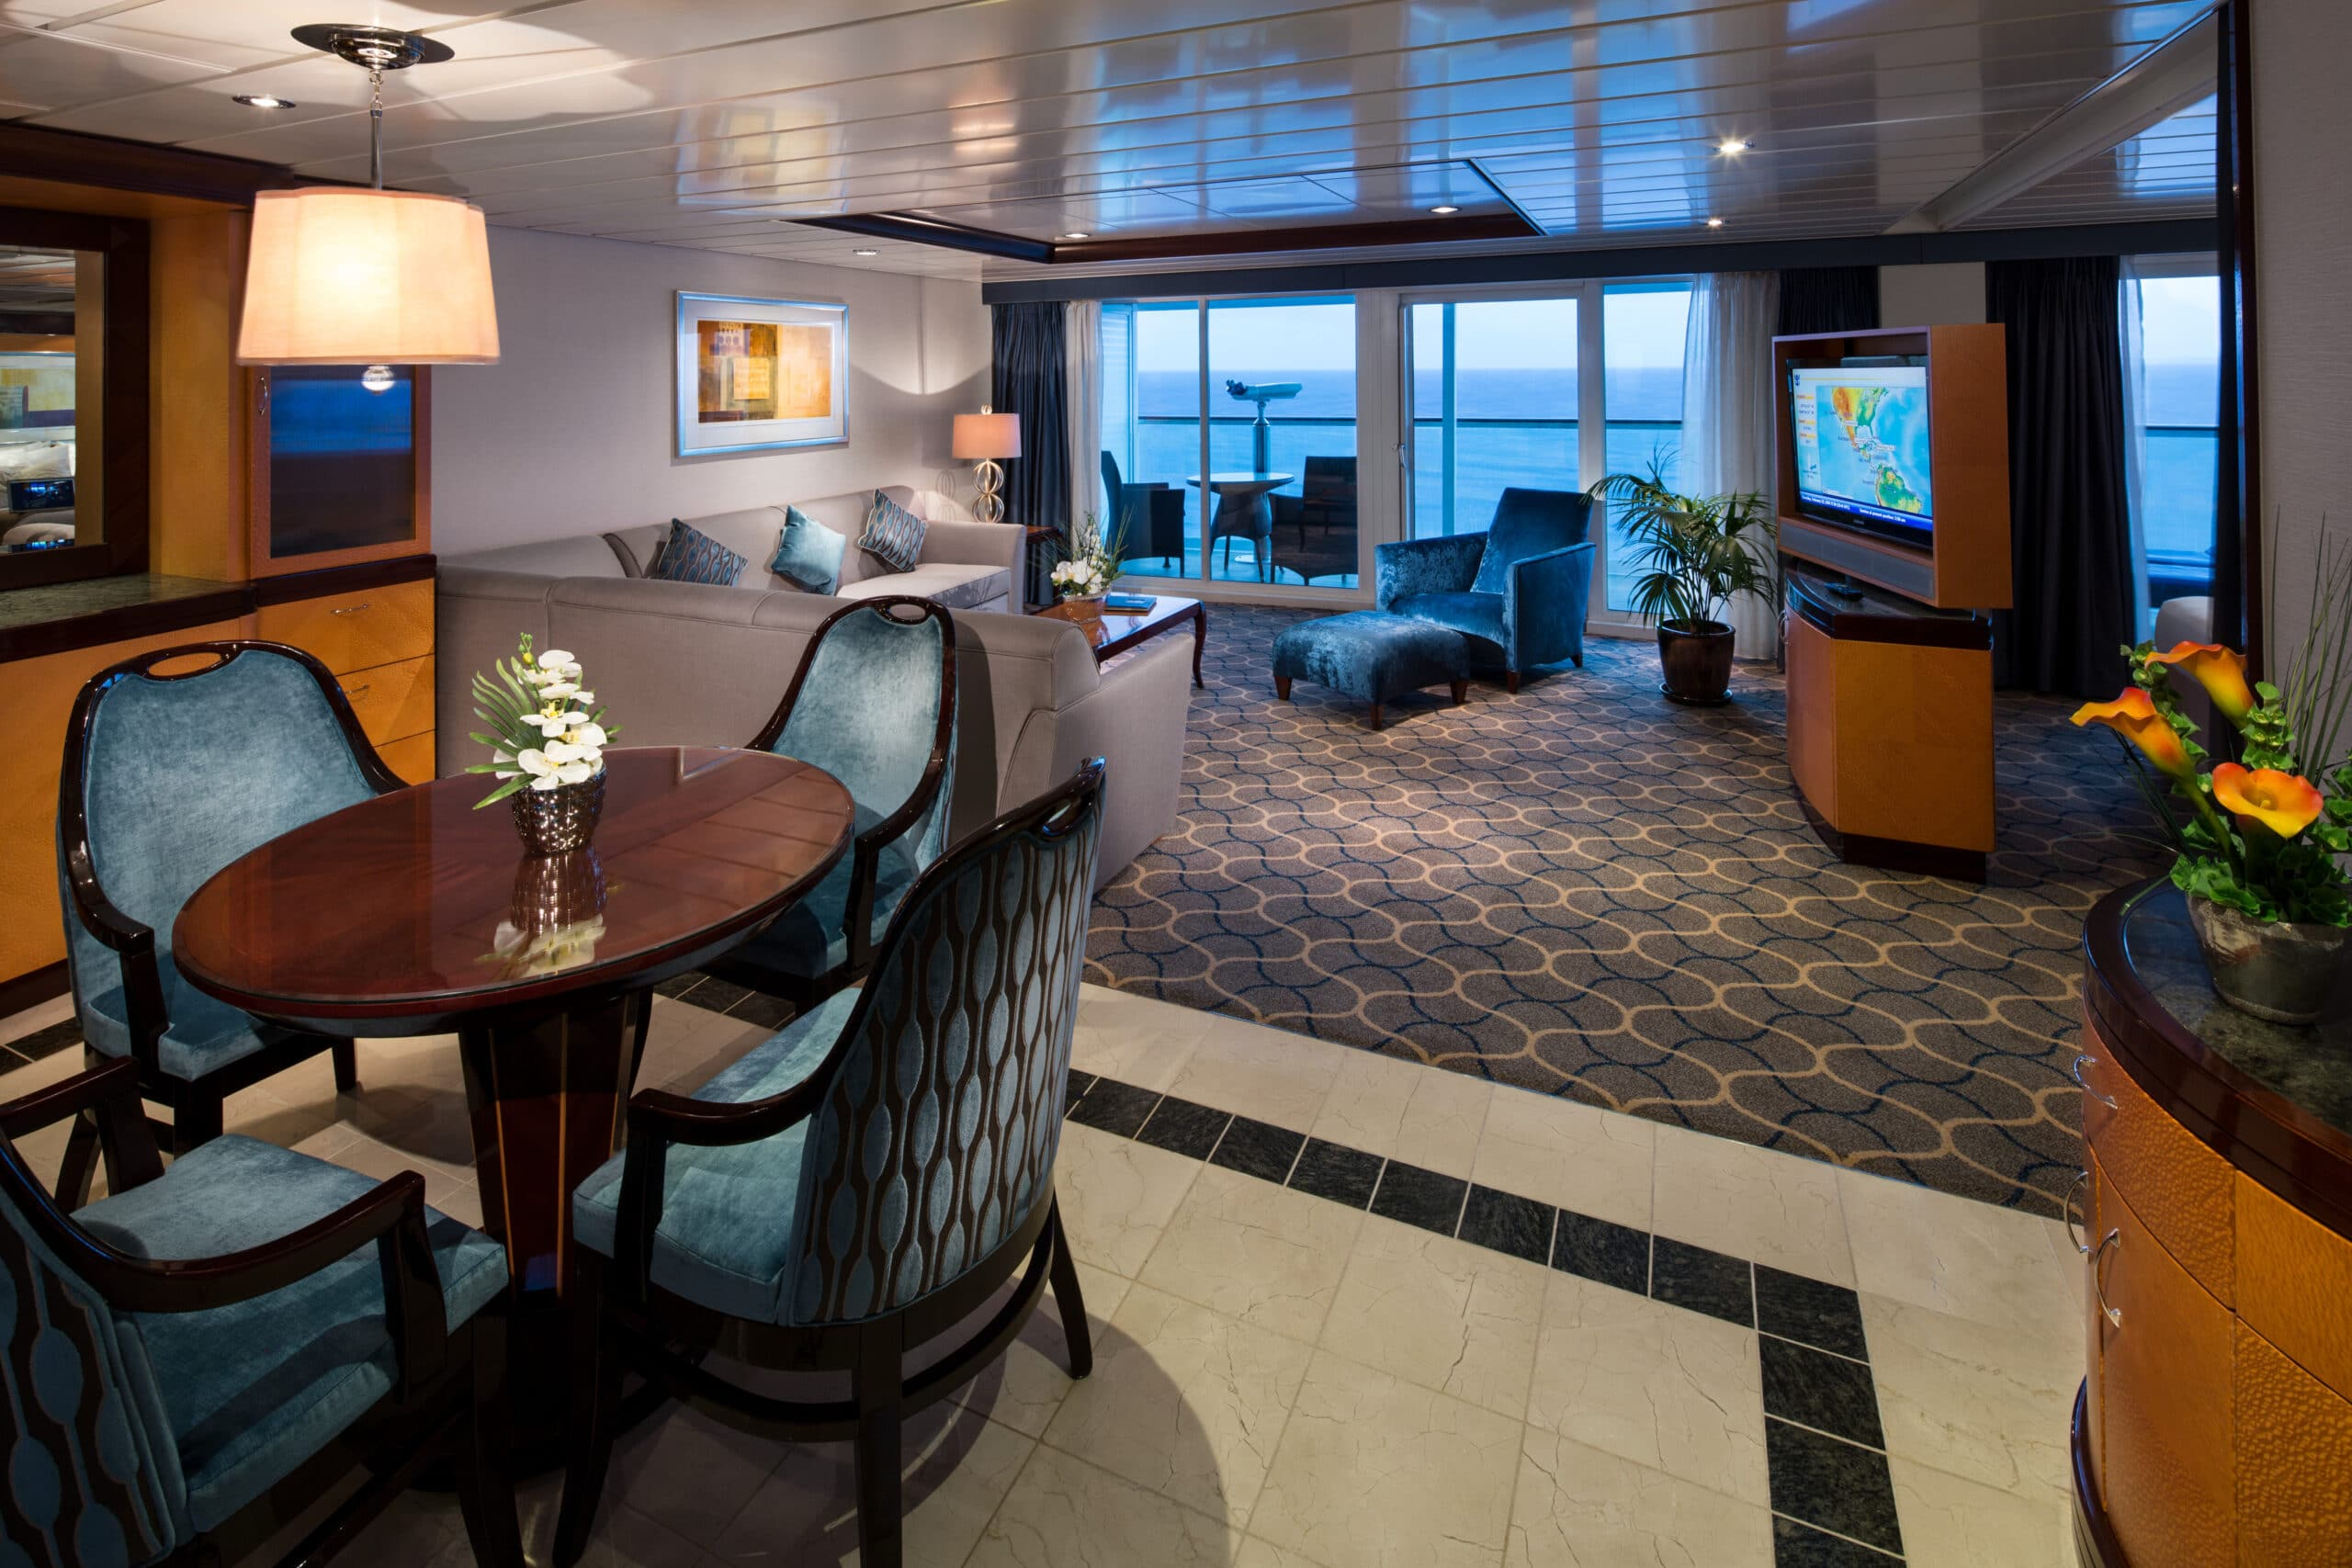 Royal-Caribbean-International-Freedom-of-the-Seas-Liberty-of-the Seas-Independence-of-the-seas-schip-cruiseschip-categorie OS-Owner Suite